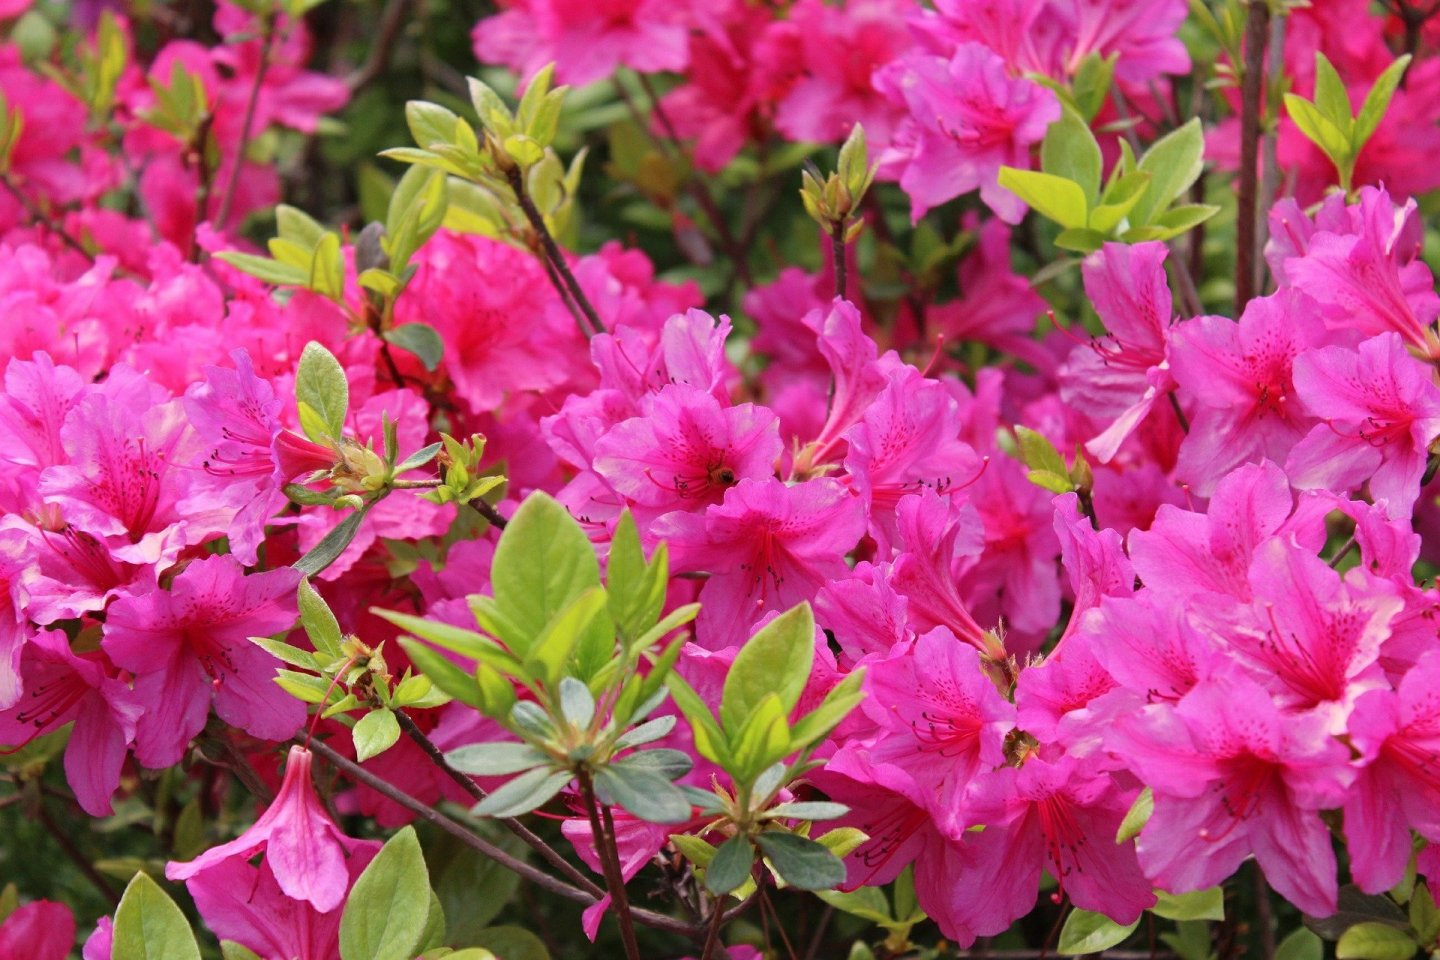 Japan is blessed with many beautiful destinations for azalea lovers